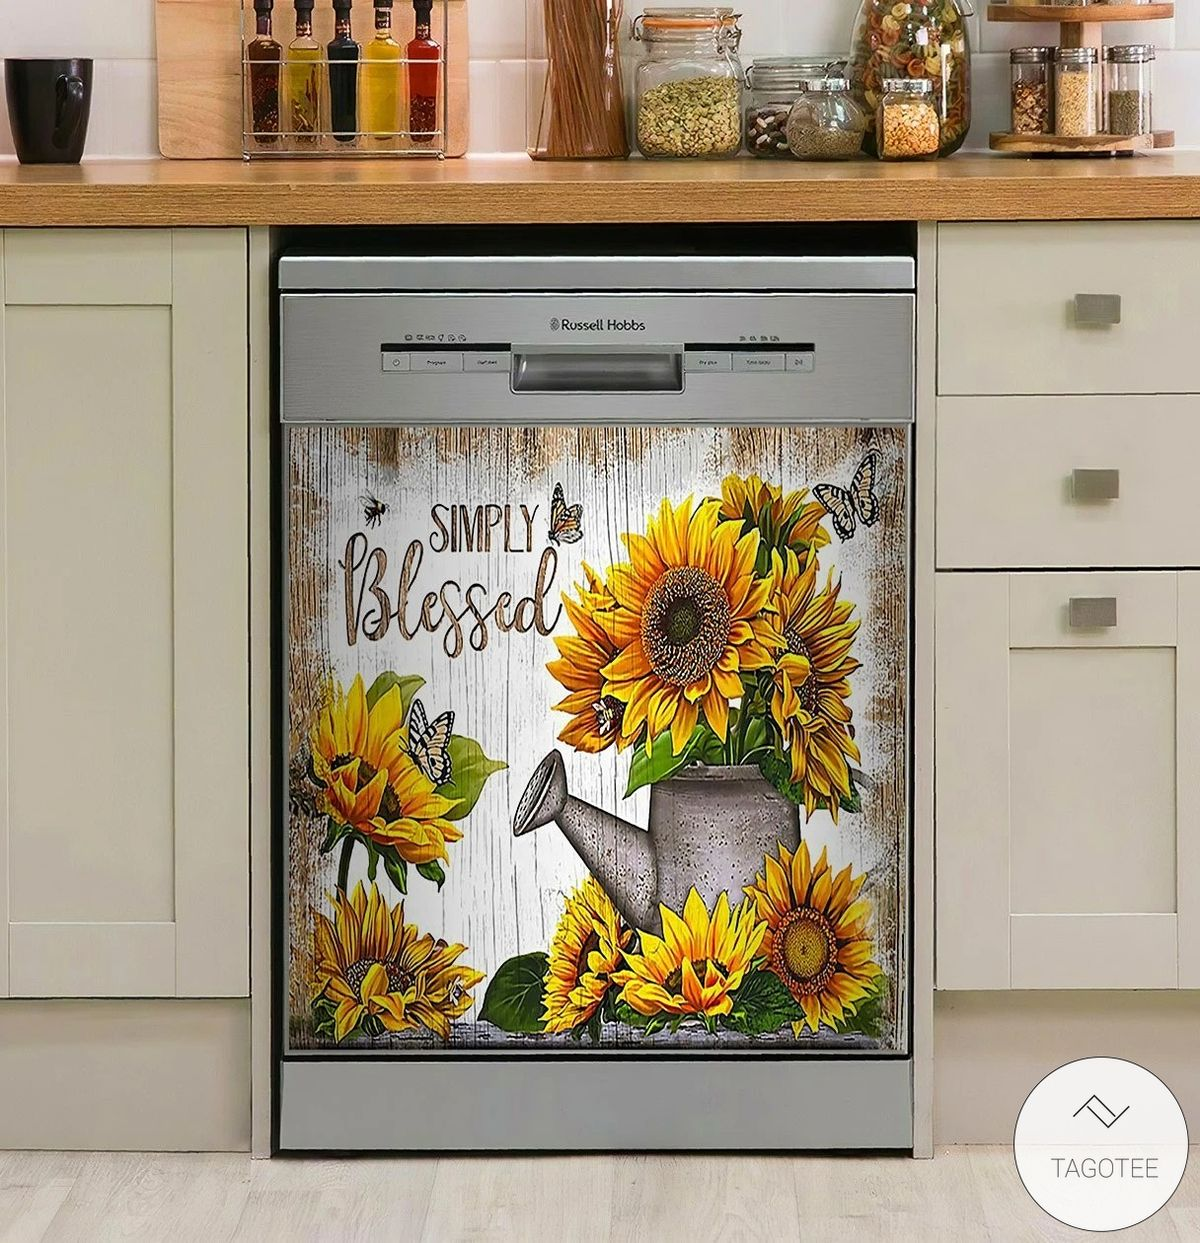 Simply Blessed Sunflower Dishwasher Cover